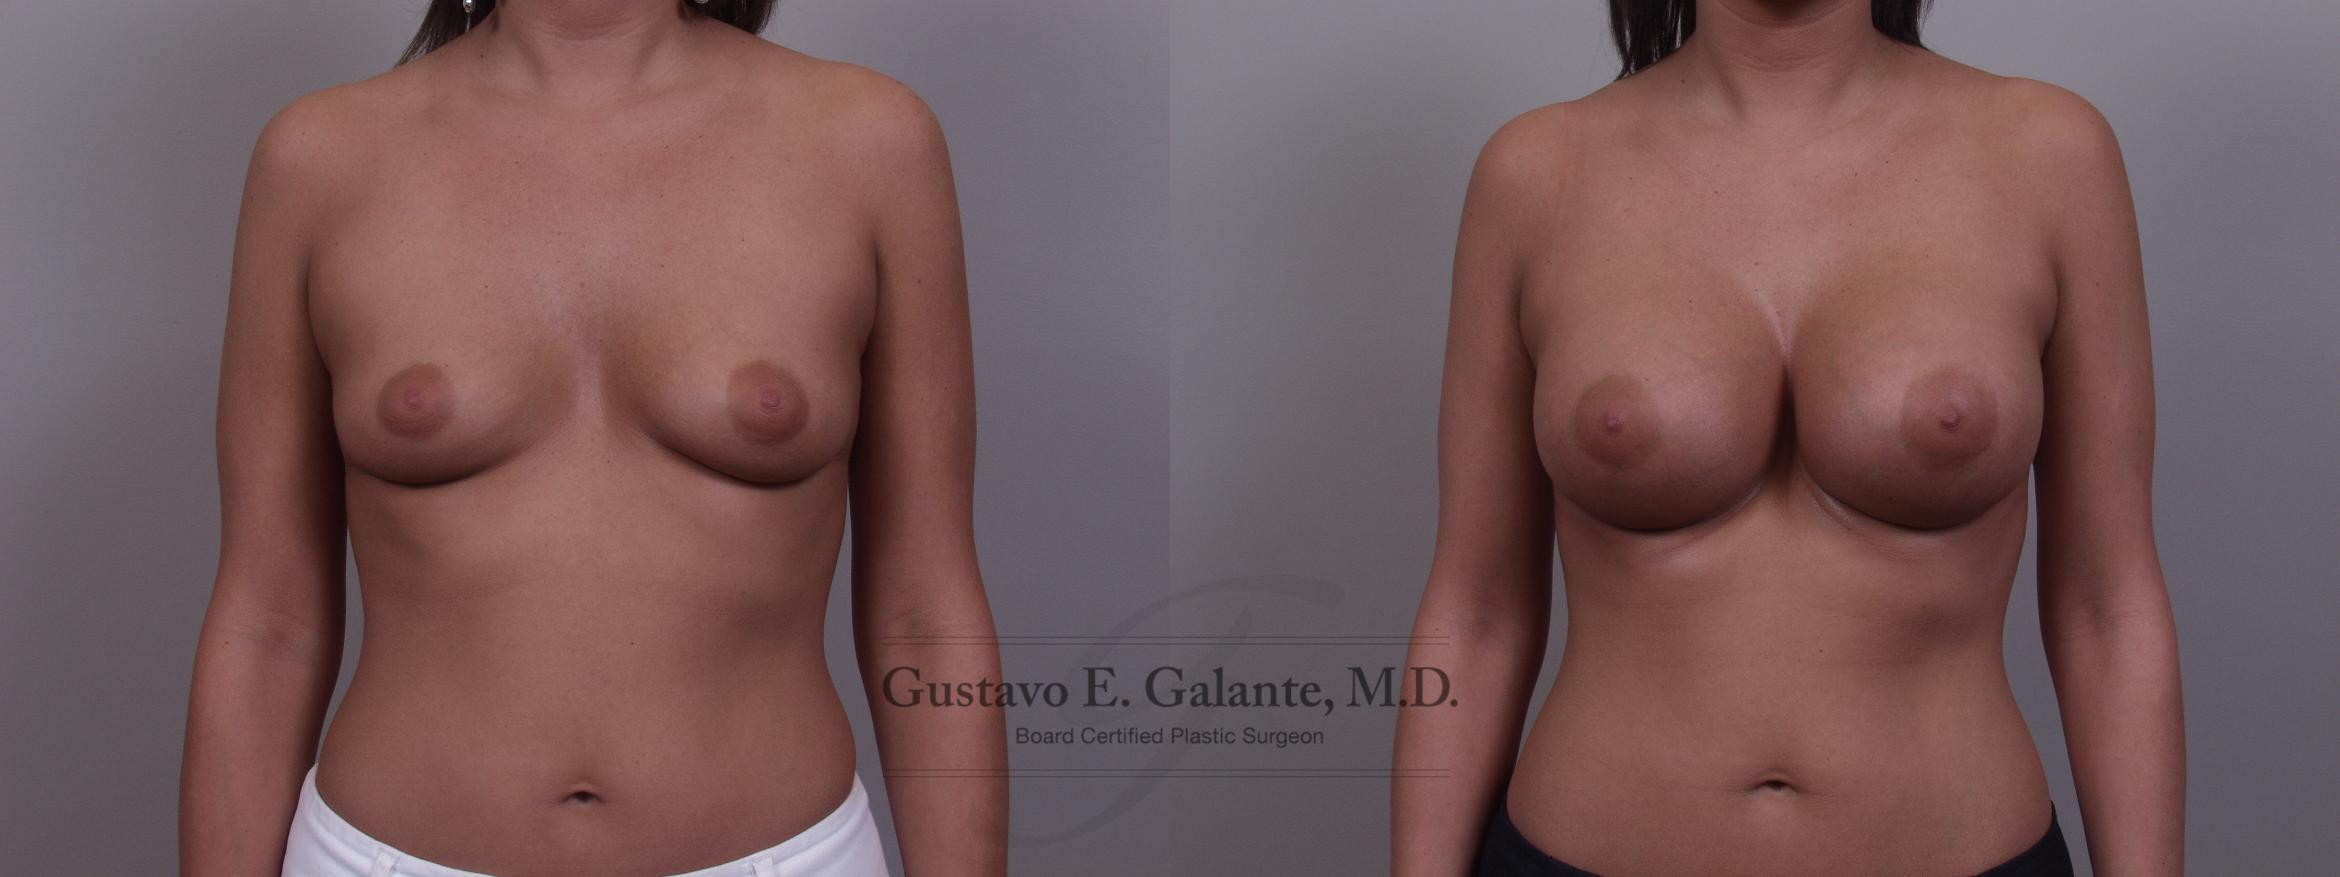 Breast Augmentation Case 89 Before & After View #1 | Valparaiso & Schererville, IN | Gustavo E. Galante, MD